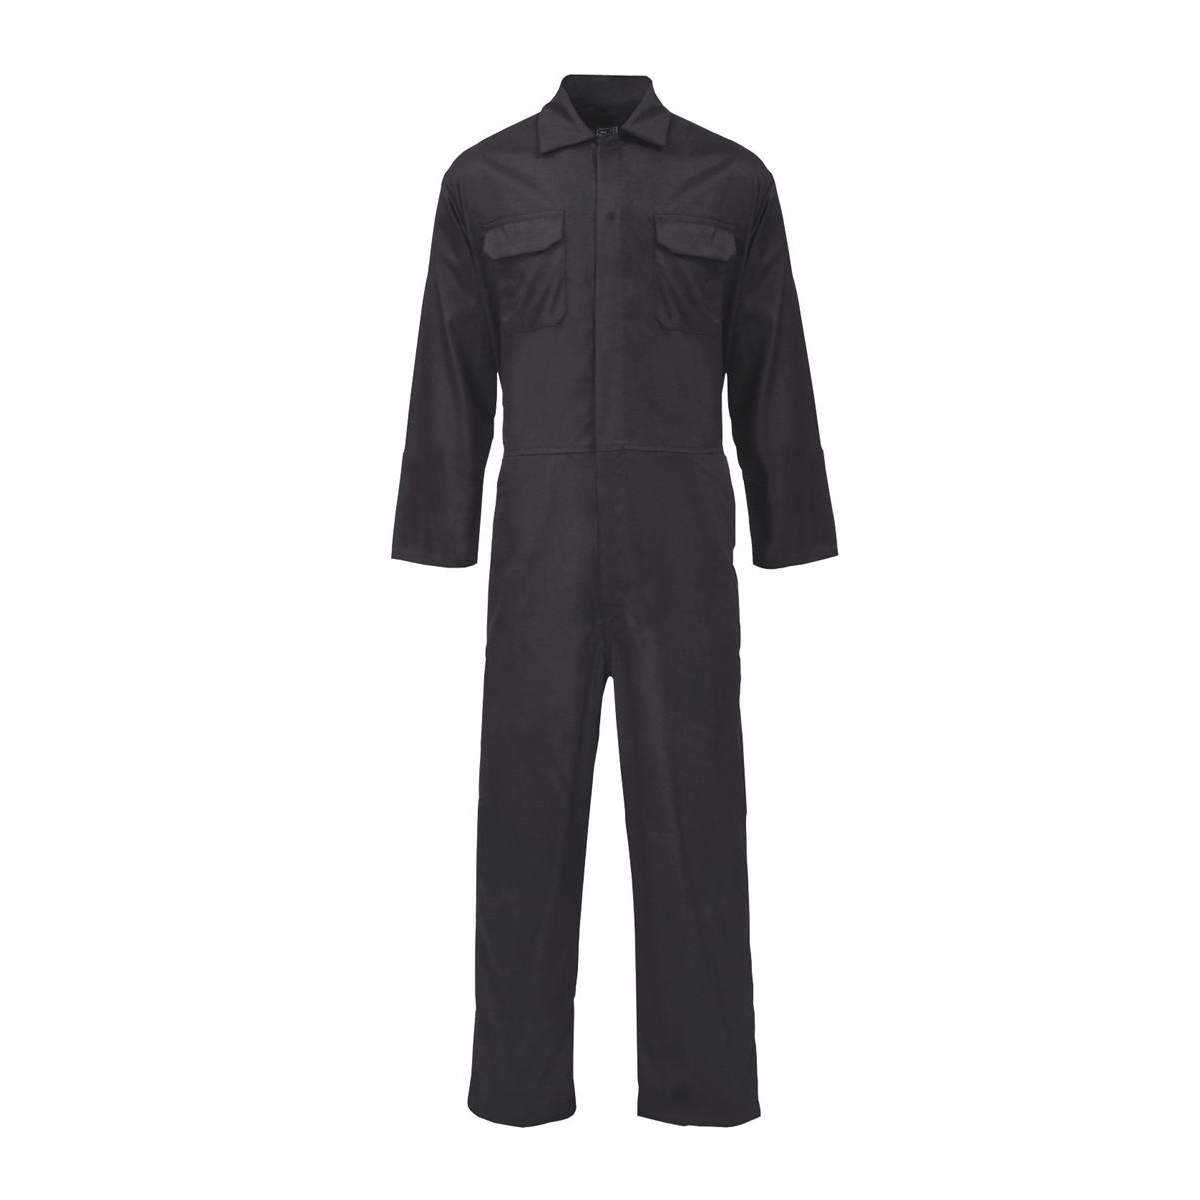 Coverall Basic with Popper Front Opening Polycotton XXLarge Black Ref RPCBSBL50 *Approx 3 Day Leadtime*